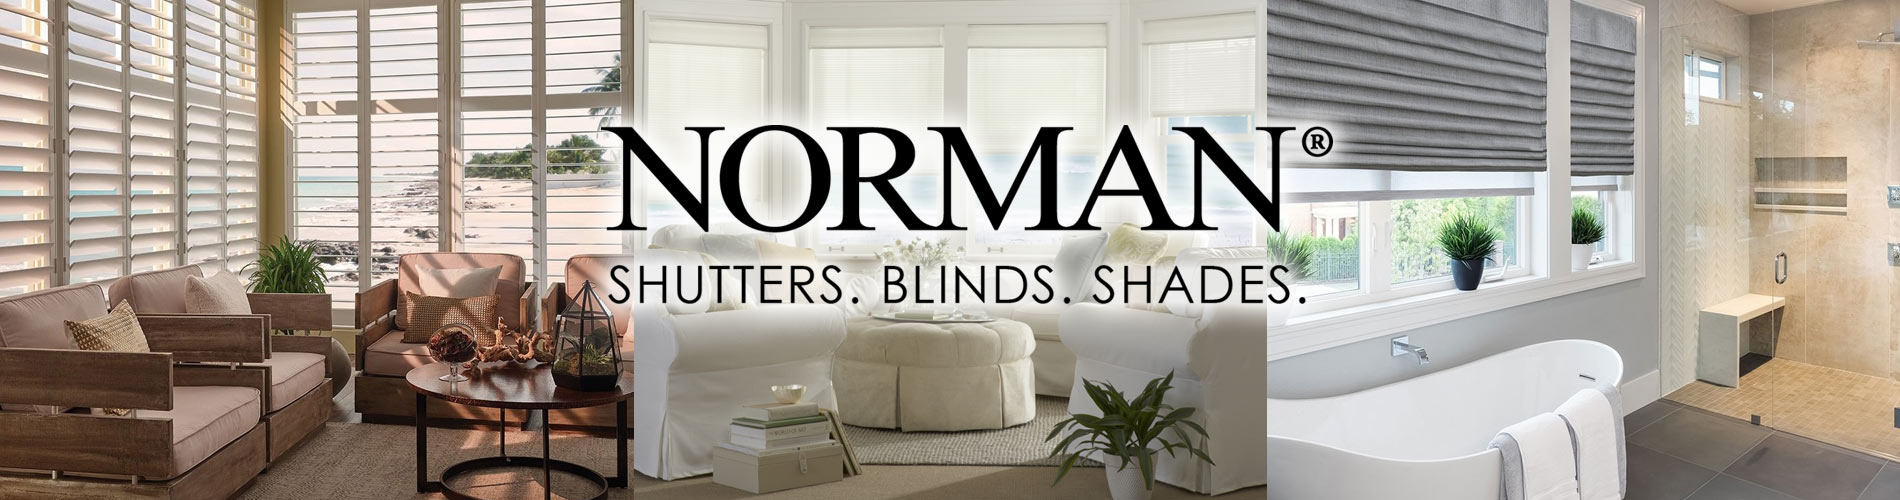 Norman window coverings. Shutters, blinds, and shades all at Florence Carpet and Tile